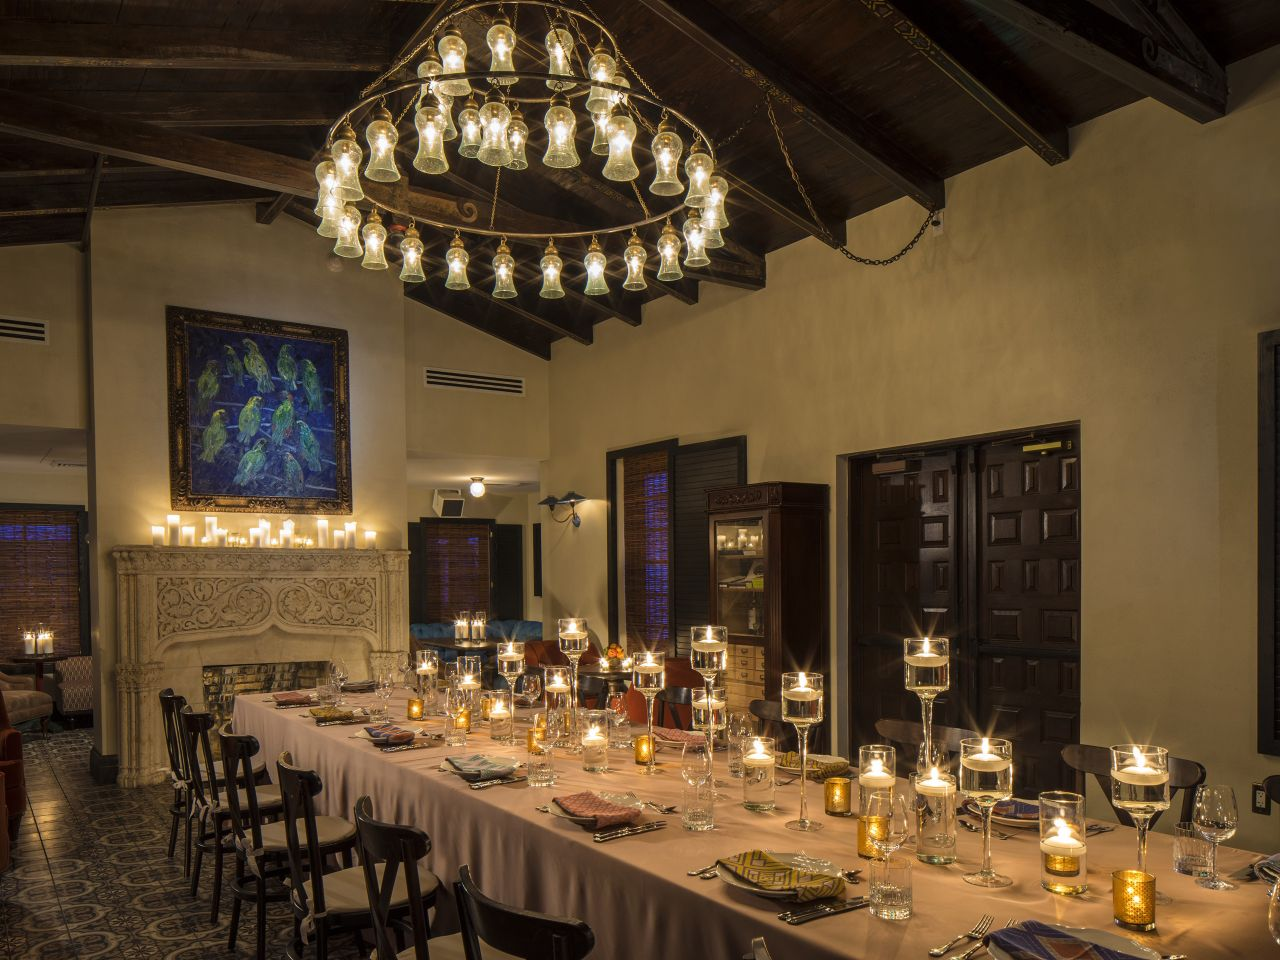 The 1930s House Dinner Reception